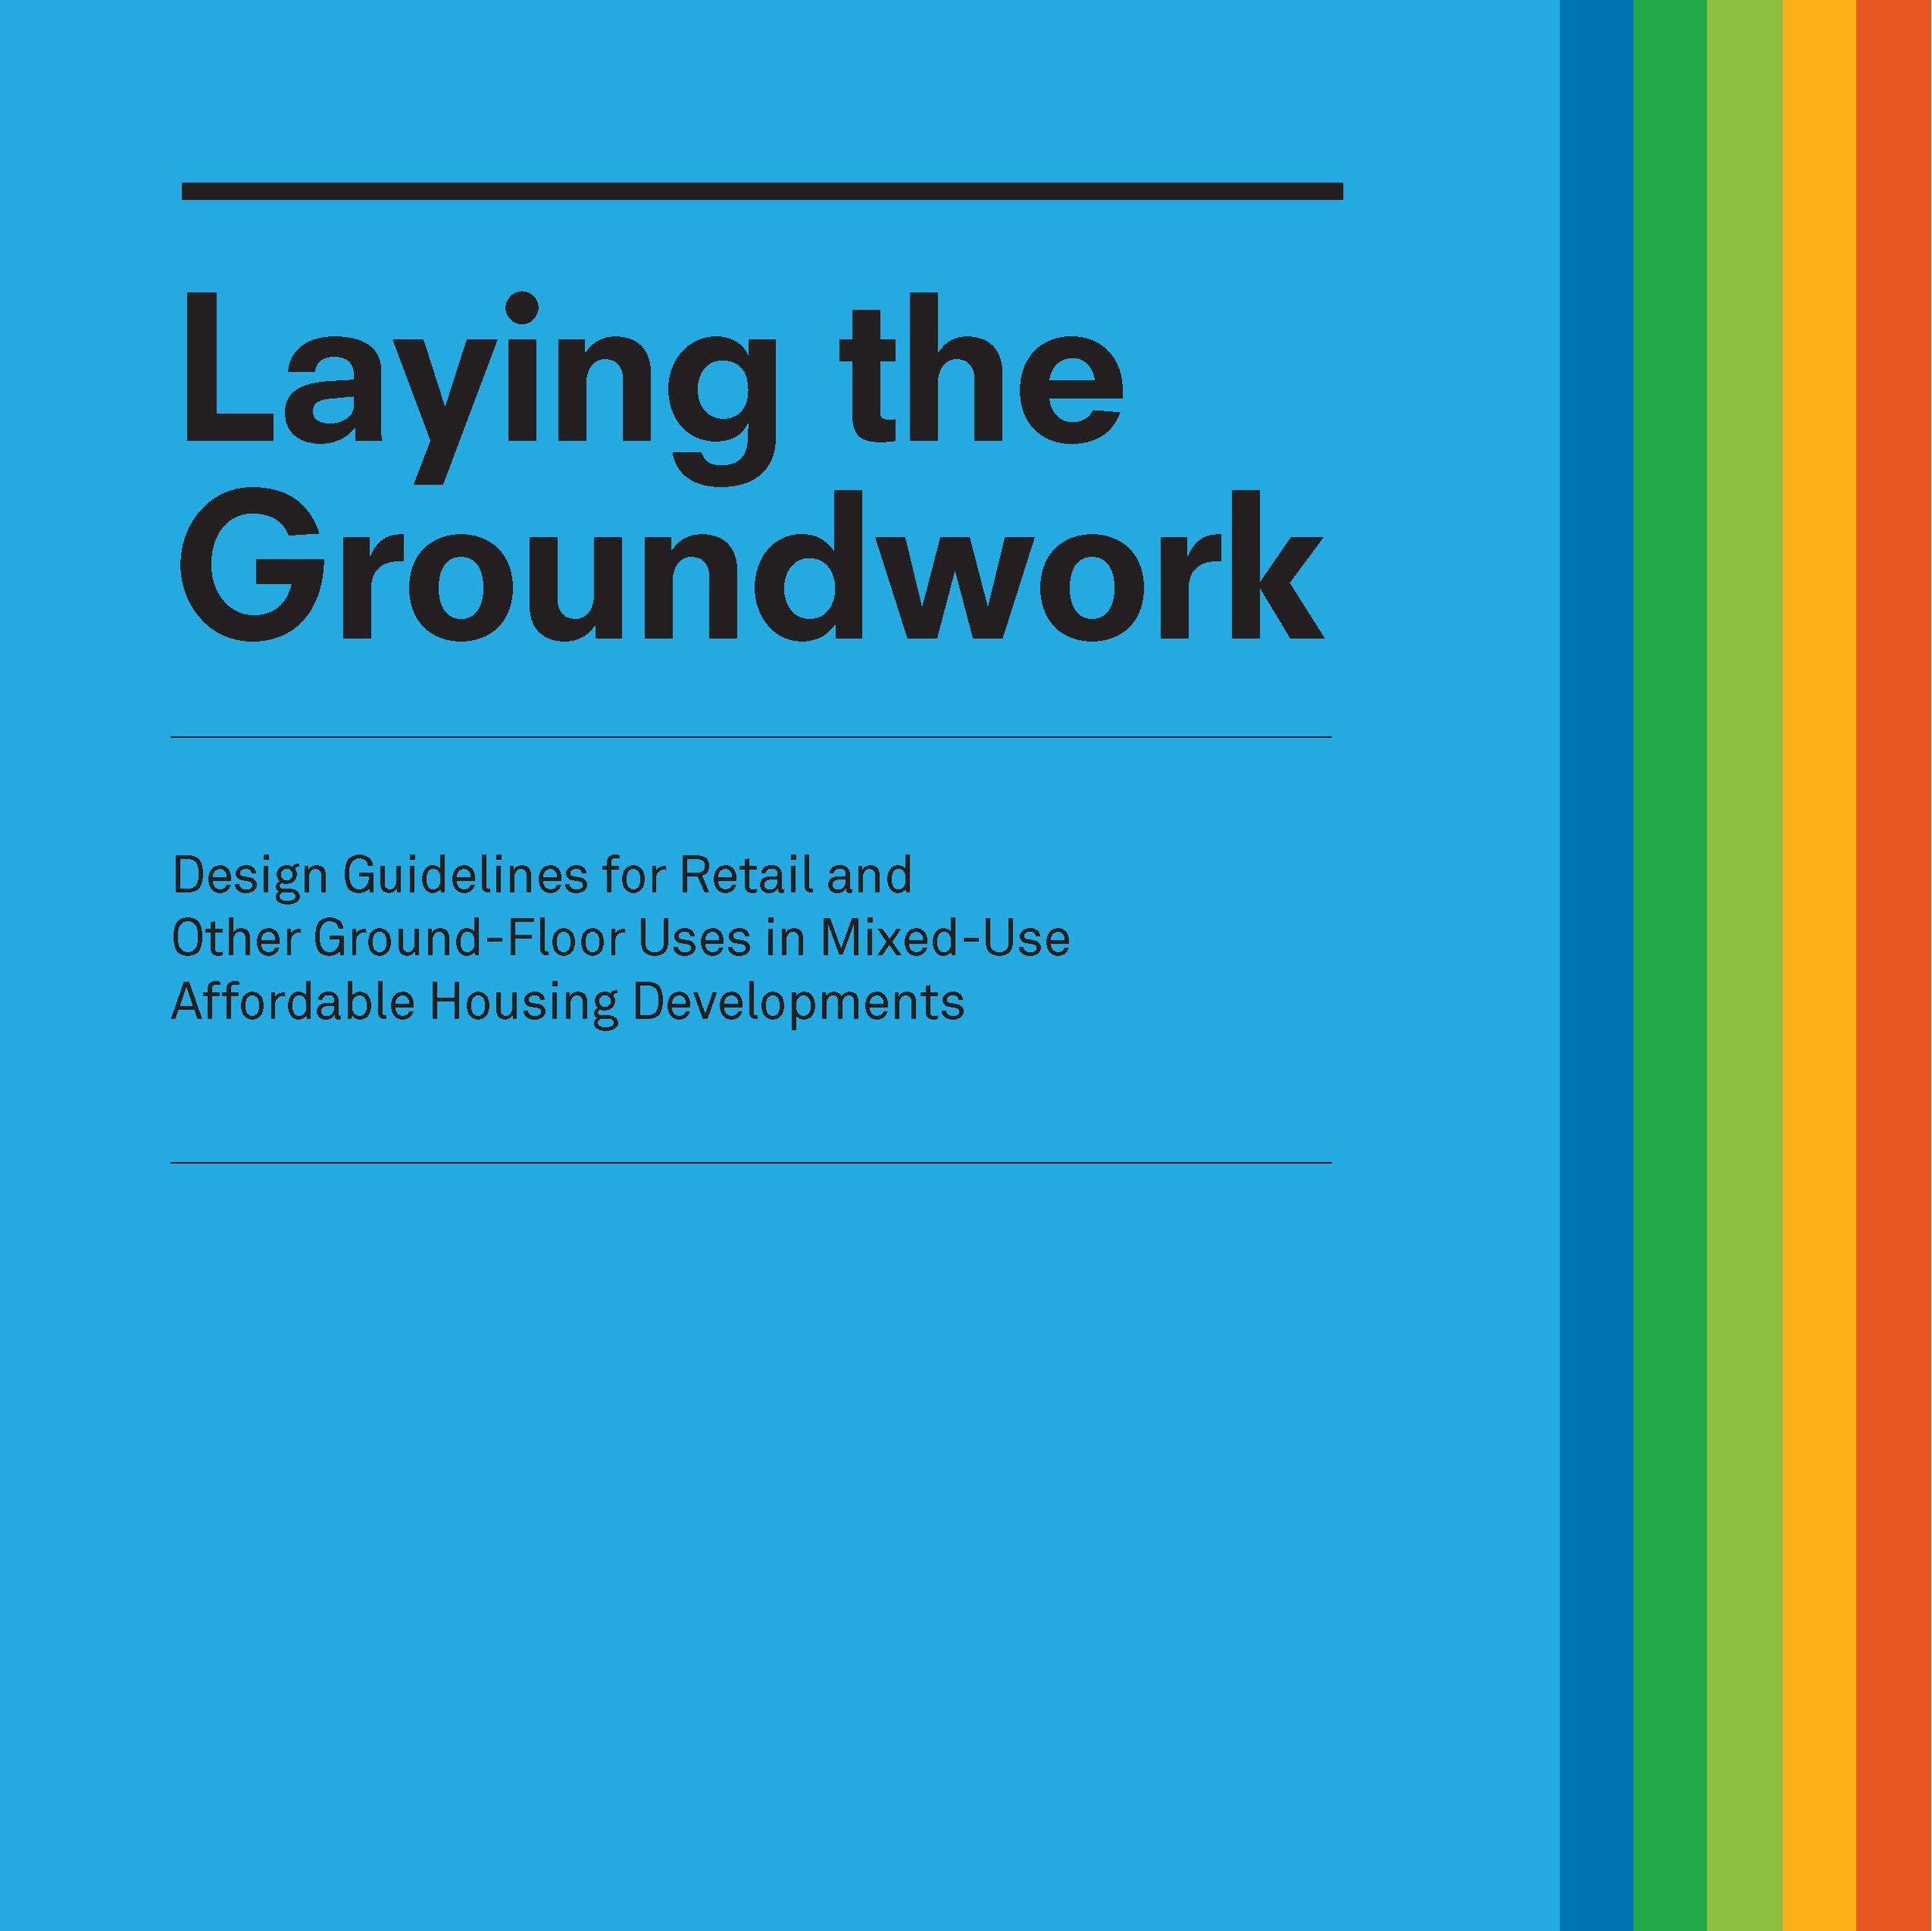 Laying the Groundwork: Design Guidelines and Other Ground-Floor Uses in Mixed-Use Affordable Housing Developments  2016 US